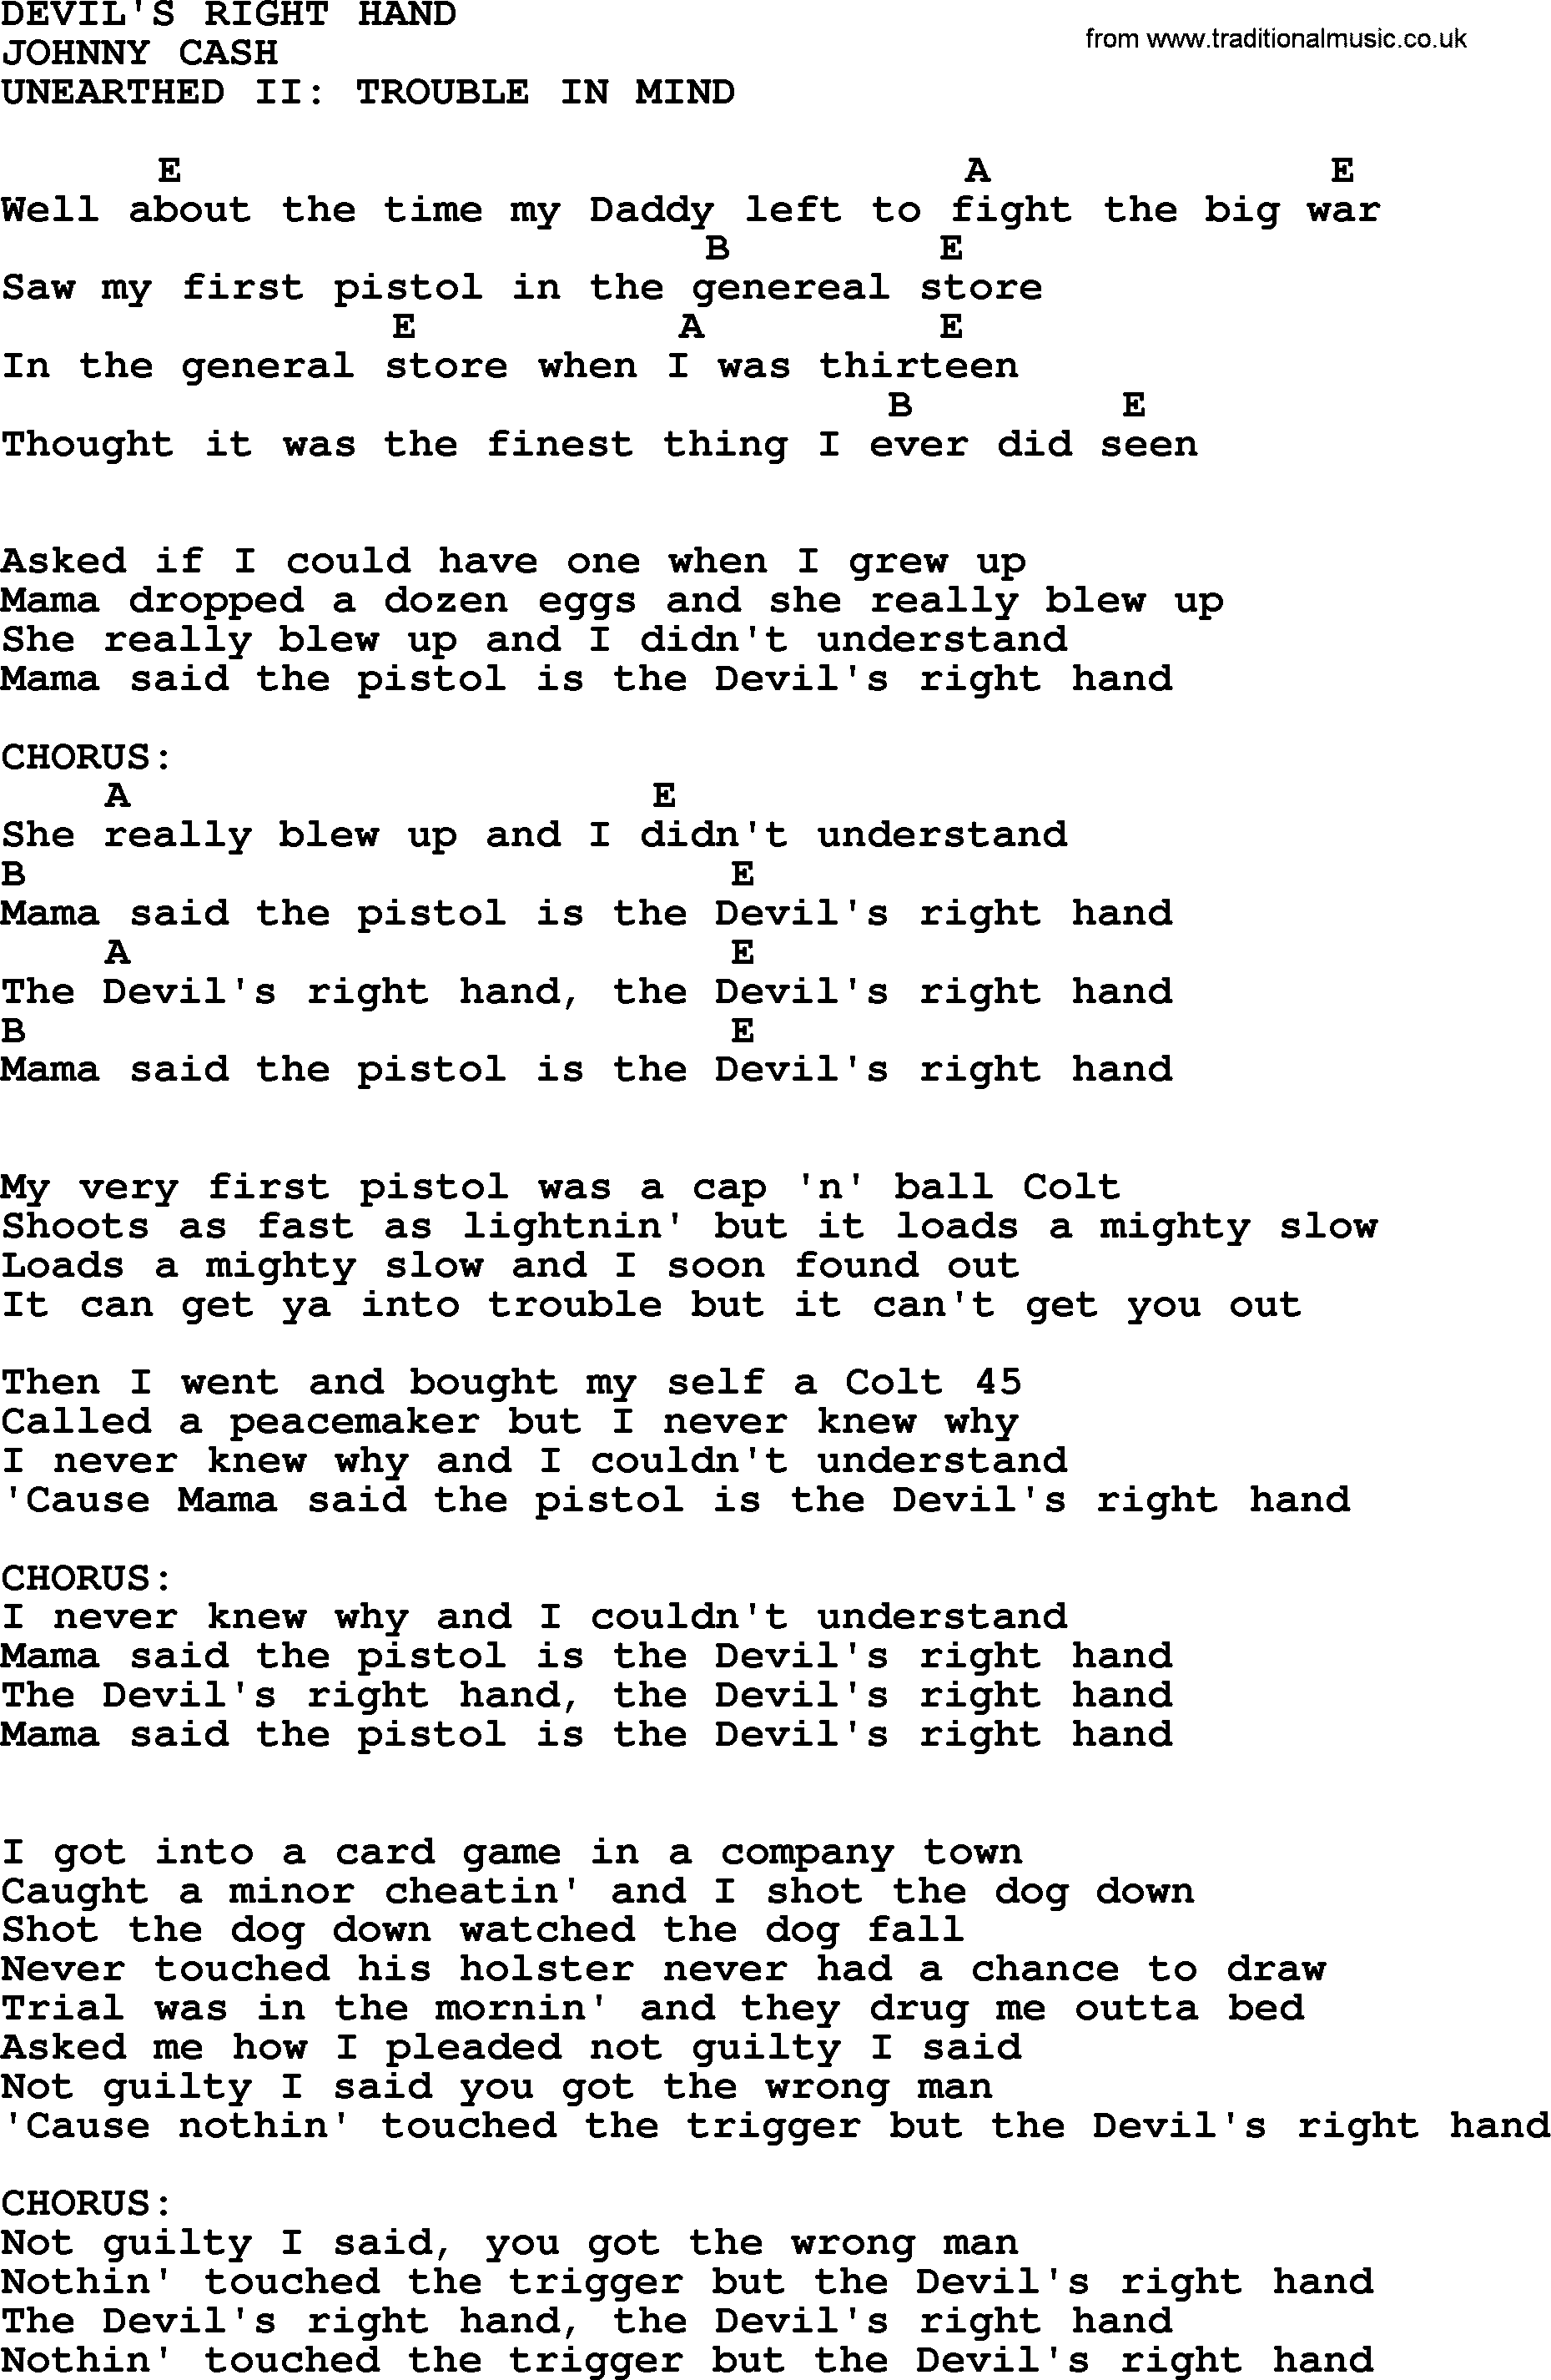 Johnny Cash Song Devils Right Hand Lyrics And Chords